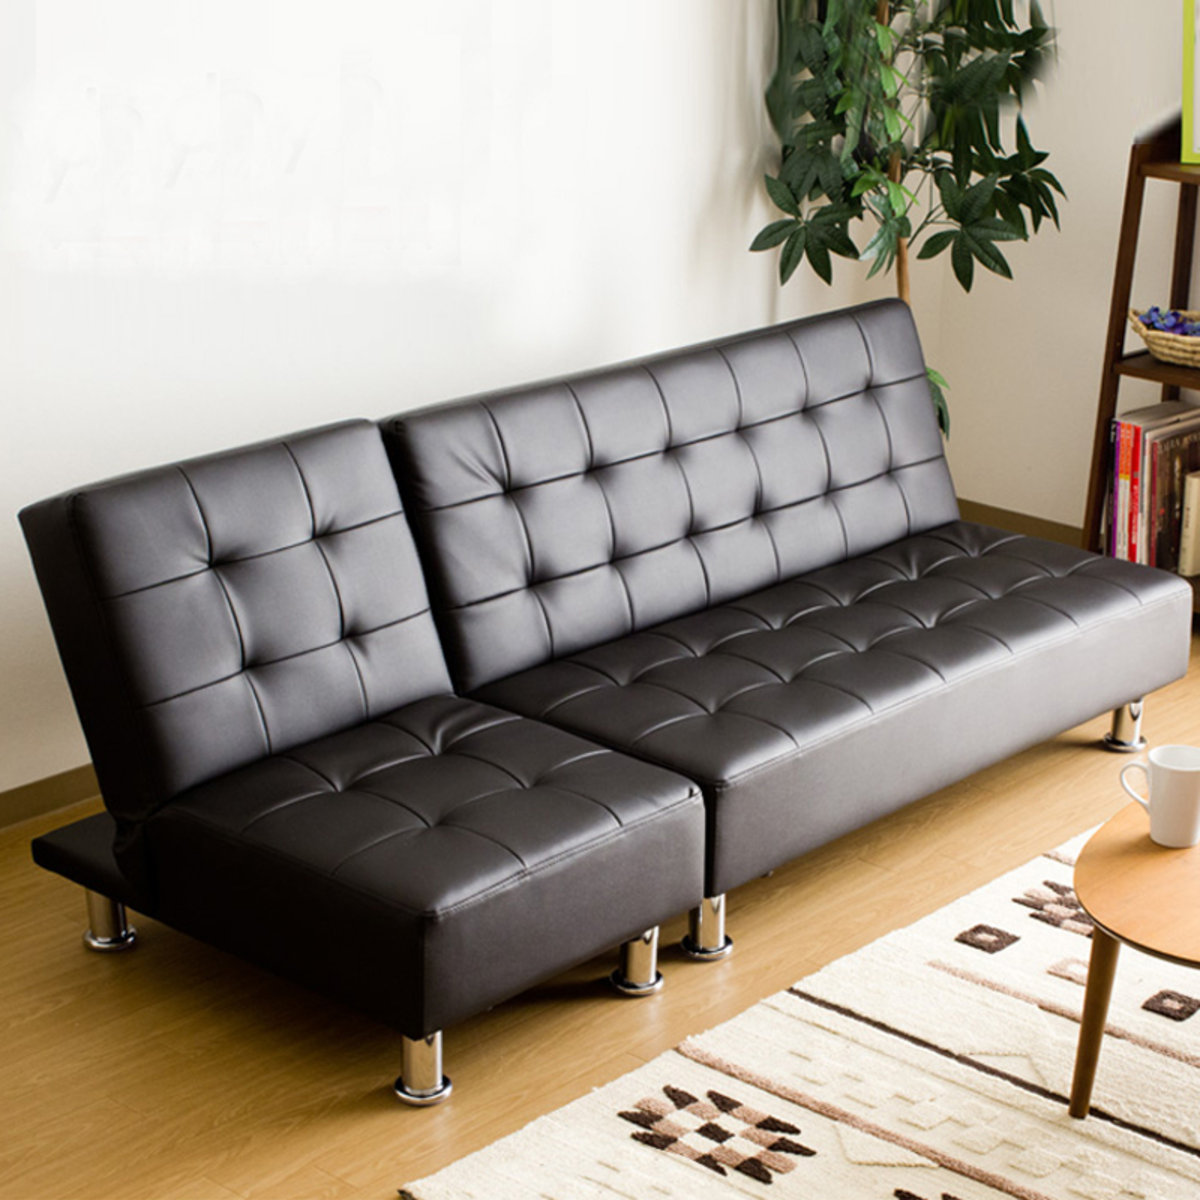 Multi-functional folding Pu sofa combination MR-021 Black